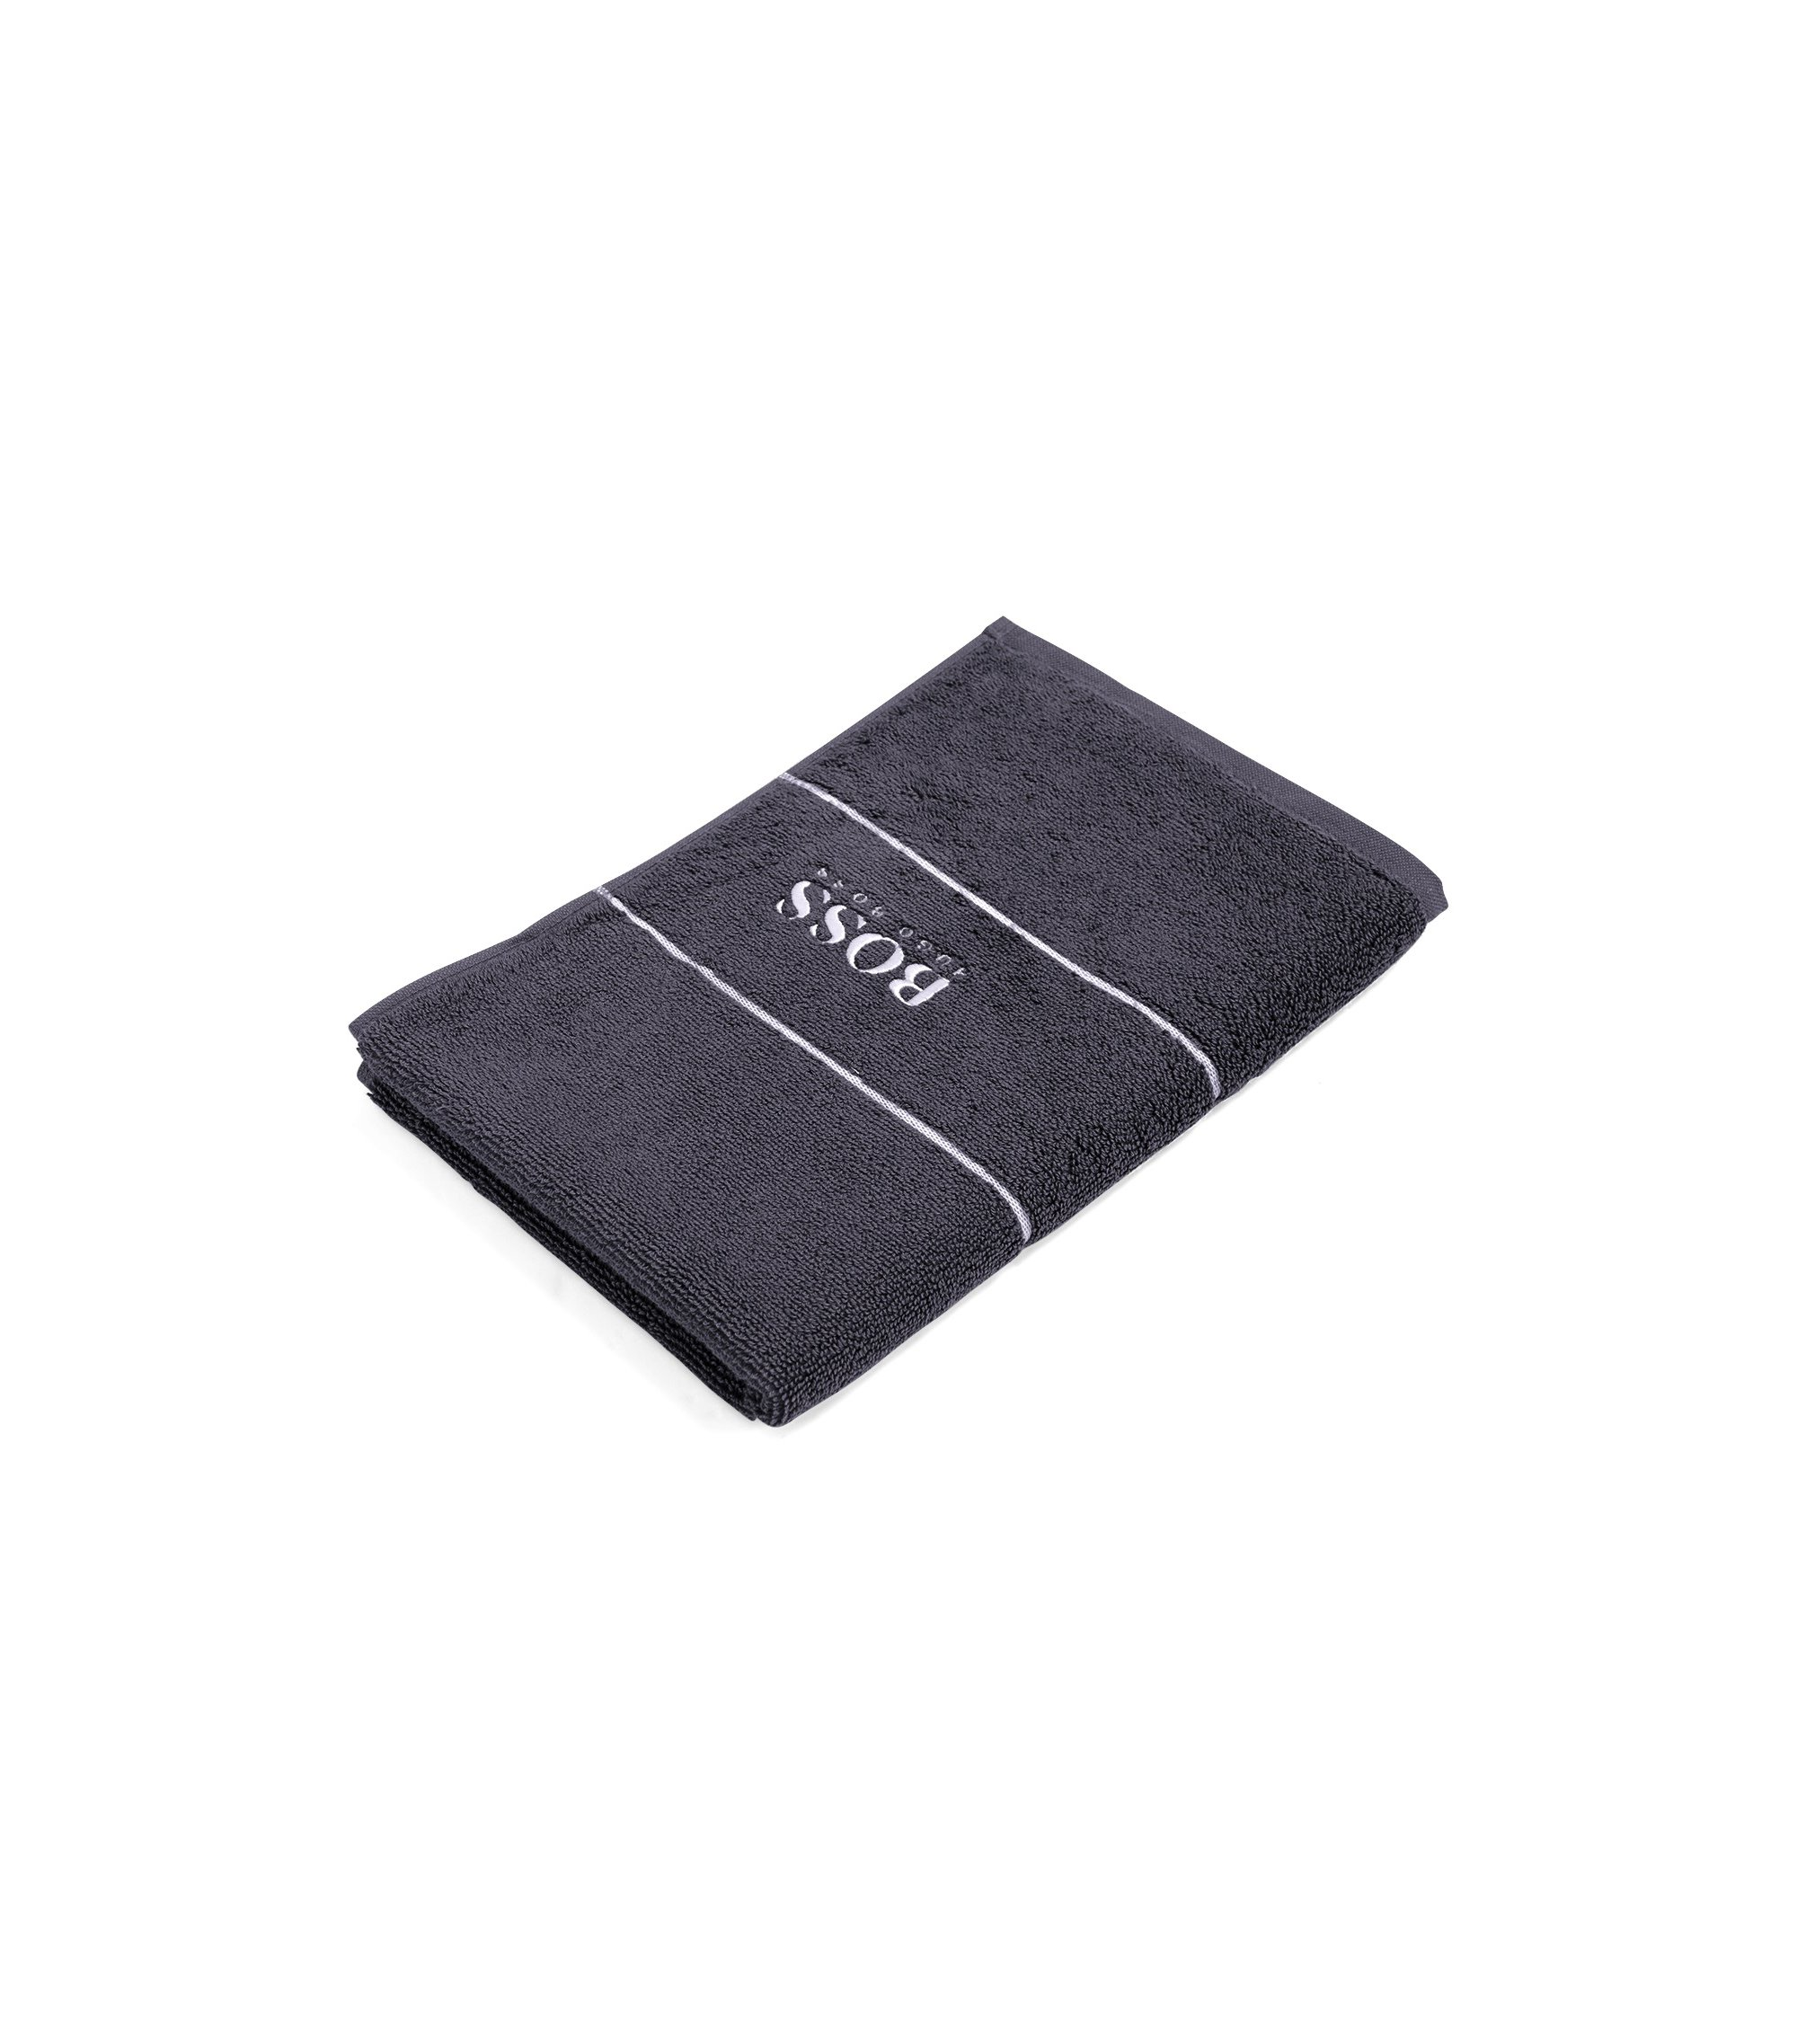 Finest Egyptian cotton guest towel with logo border, Anthracite